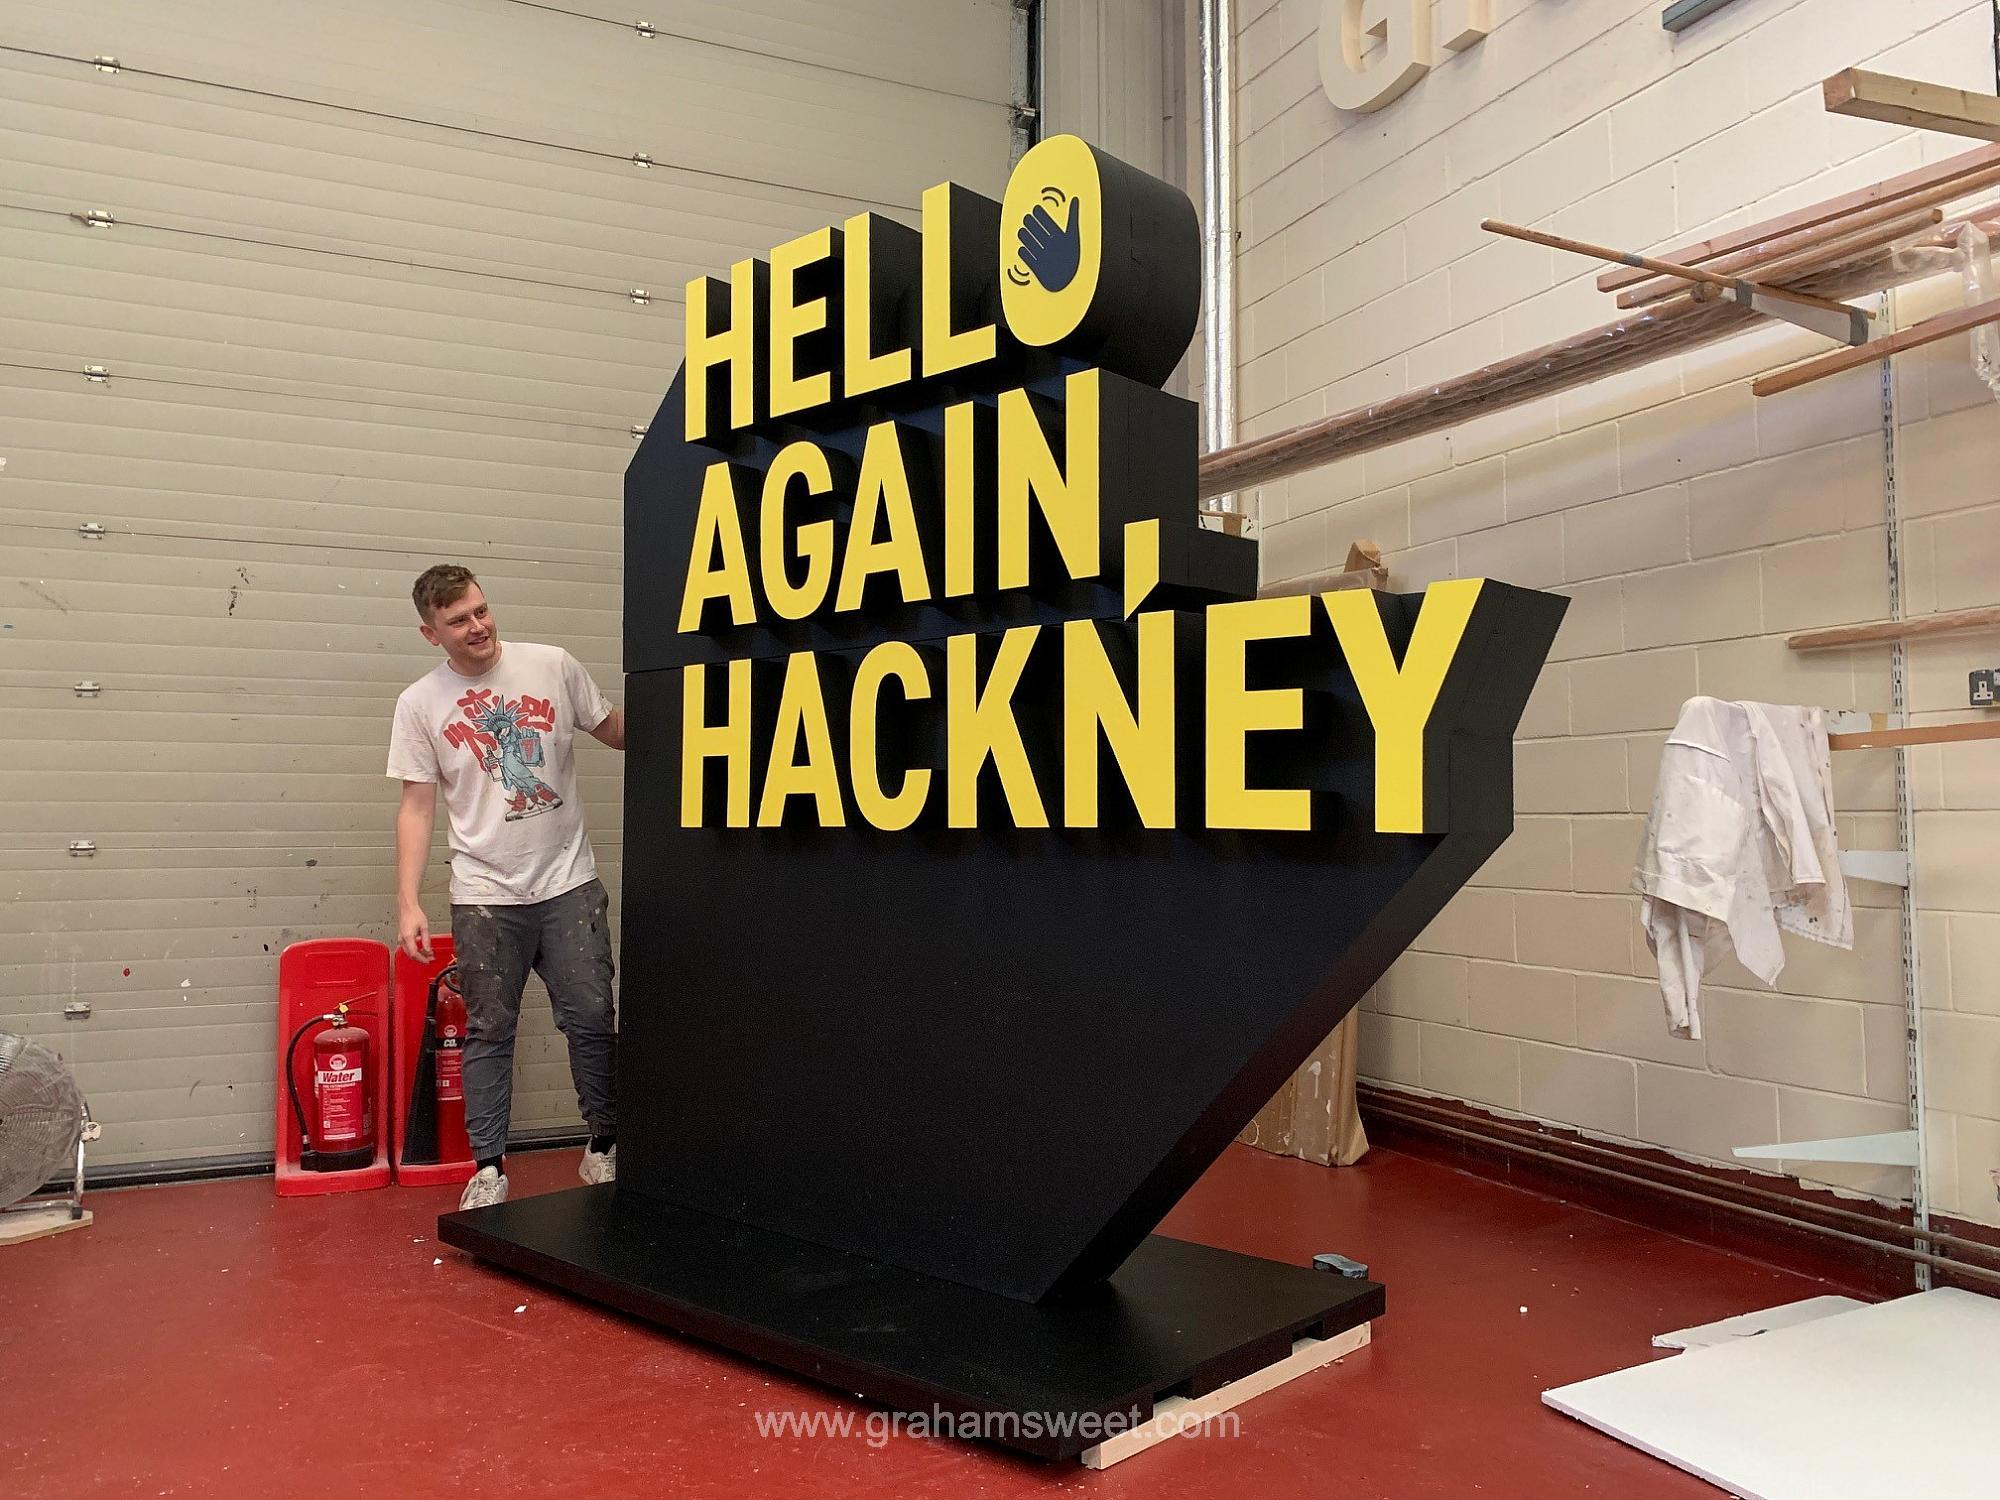 Giant polystyrene sign for hackney town council